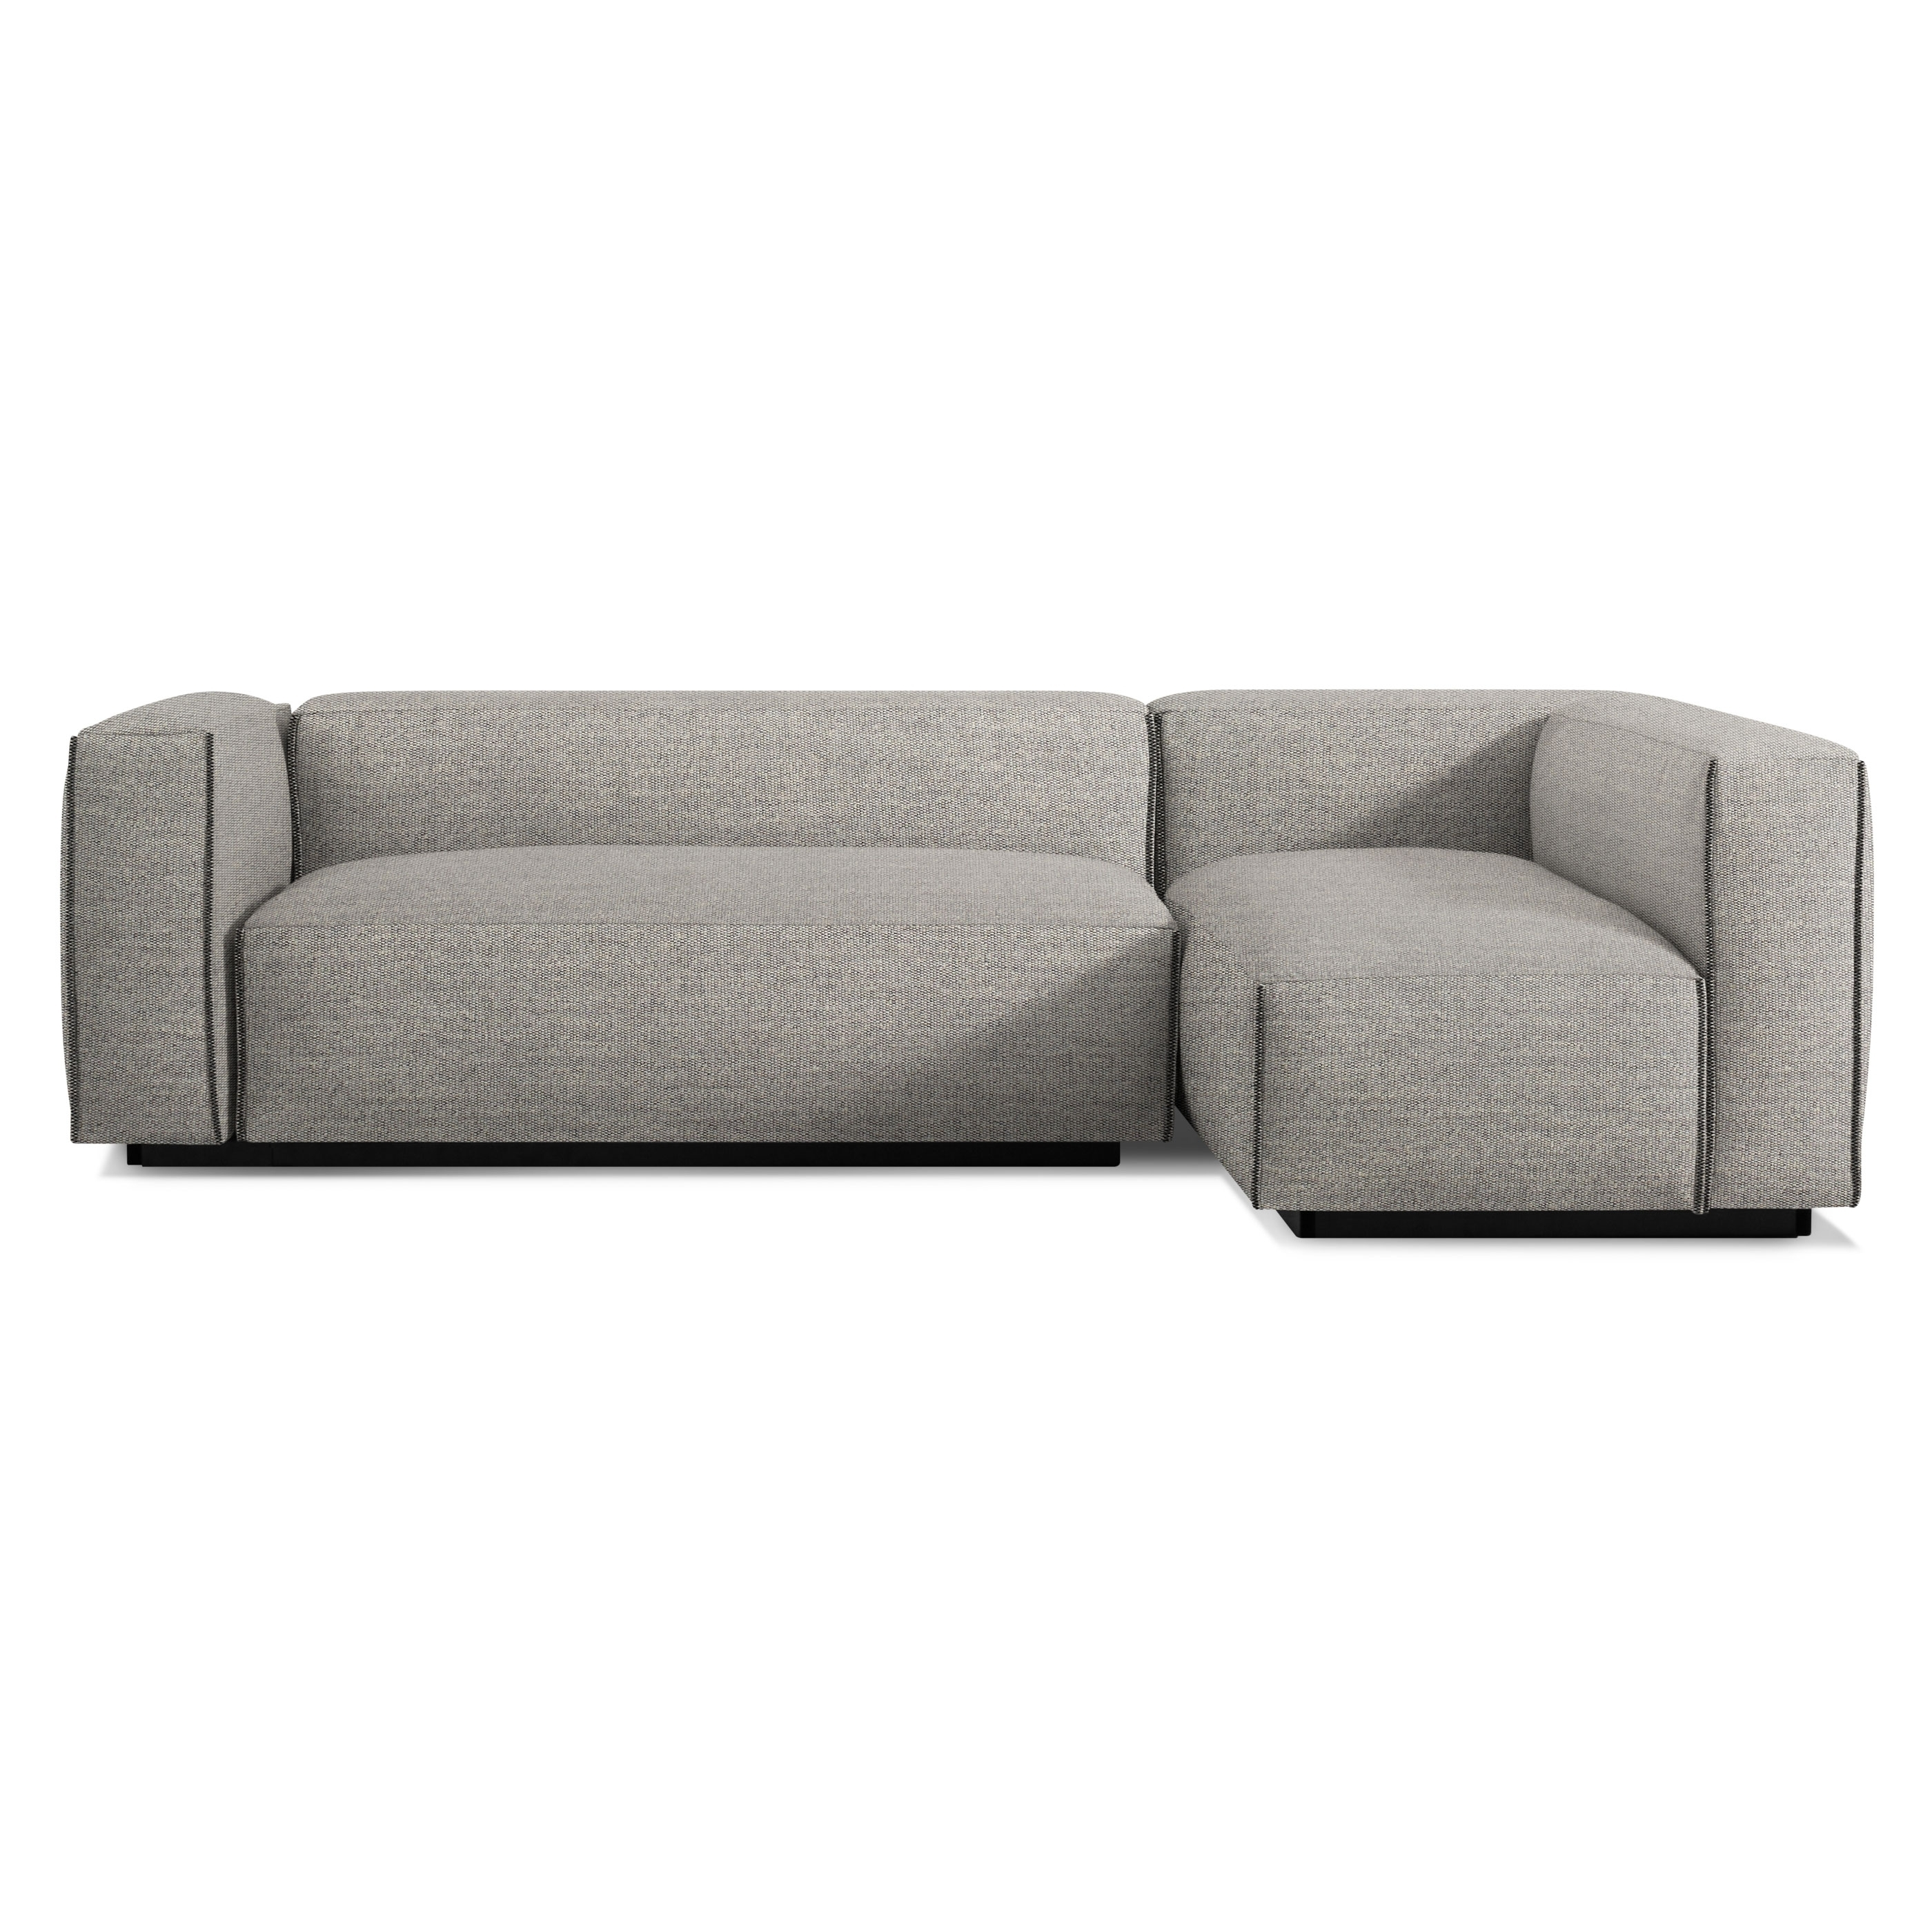 A Small Sectional Sofa Is Adorable Home Furniture For Your Living Pertaining To Avery 2 Piece Sectionals With Laf Armless Chaise (Image 4 of 25)